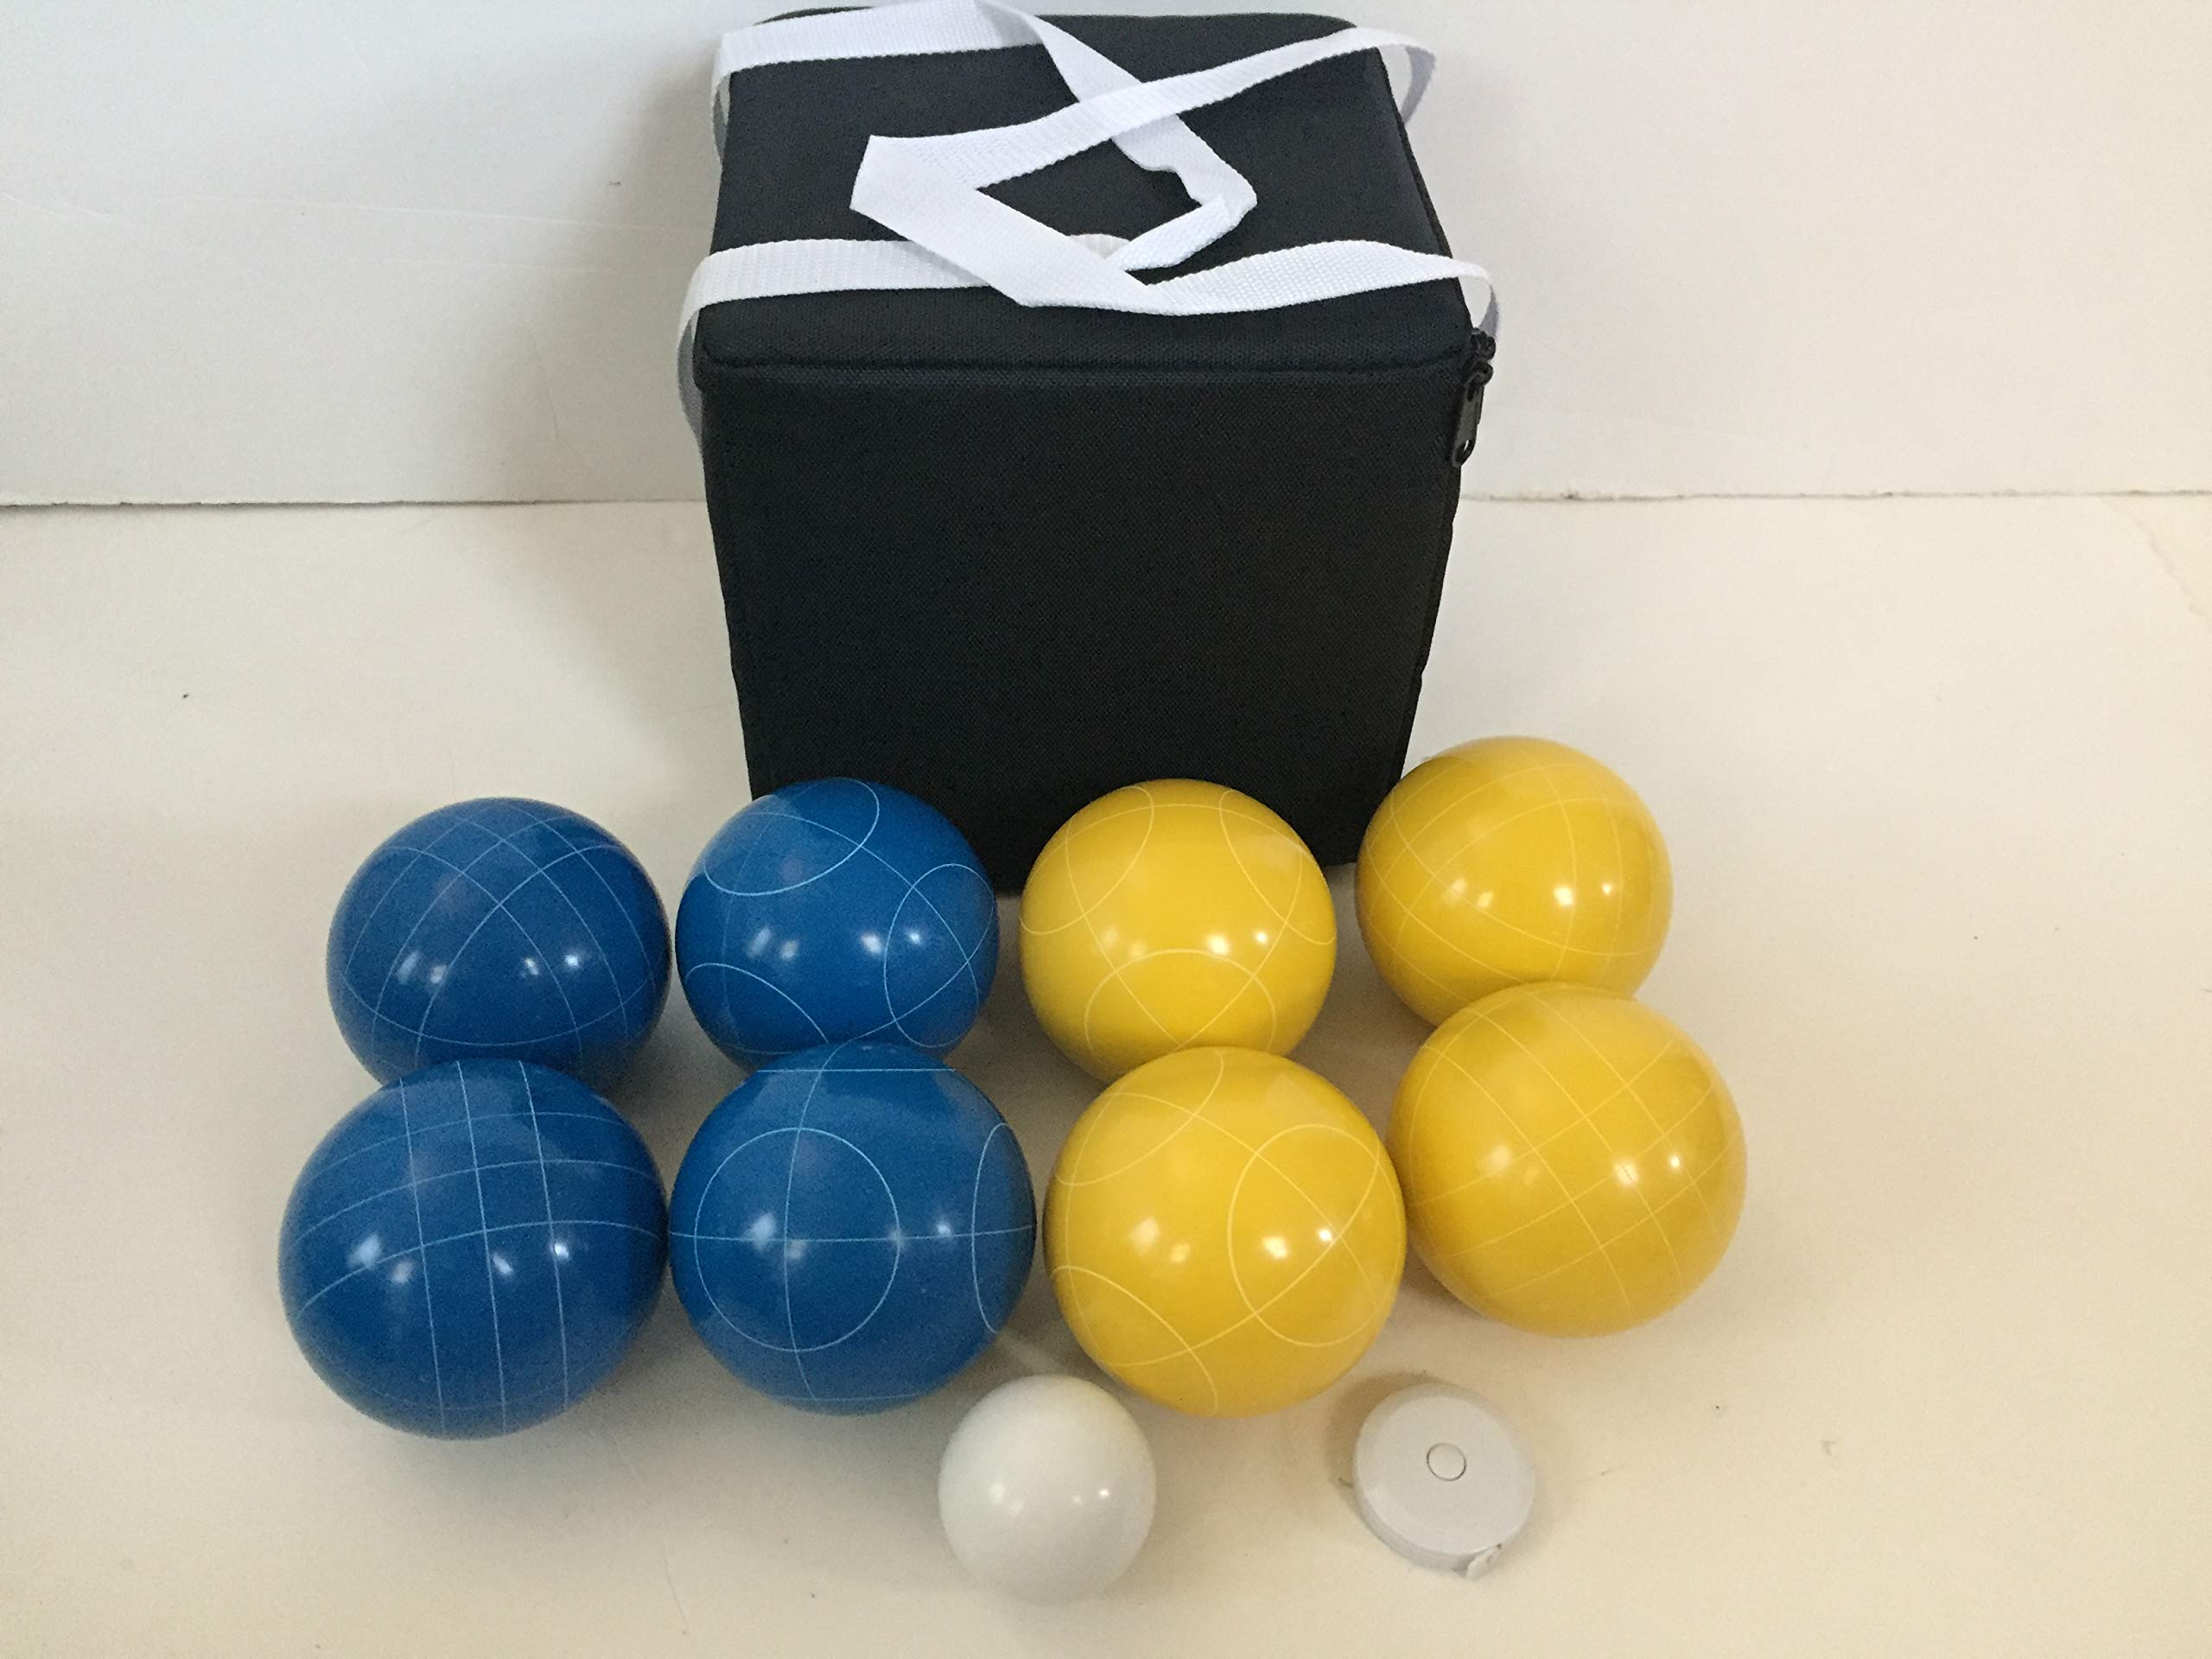 New Listing - (19 of 28) Unique Bocce Sets - 107mm with Blue and Yellow Balls, Black Bag